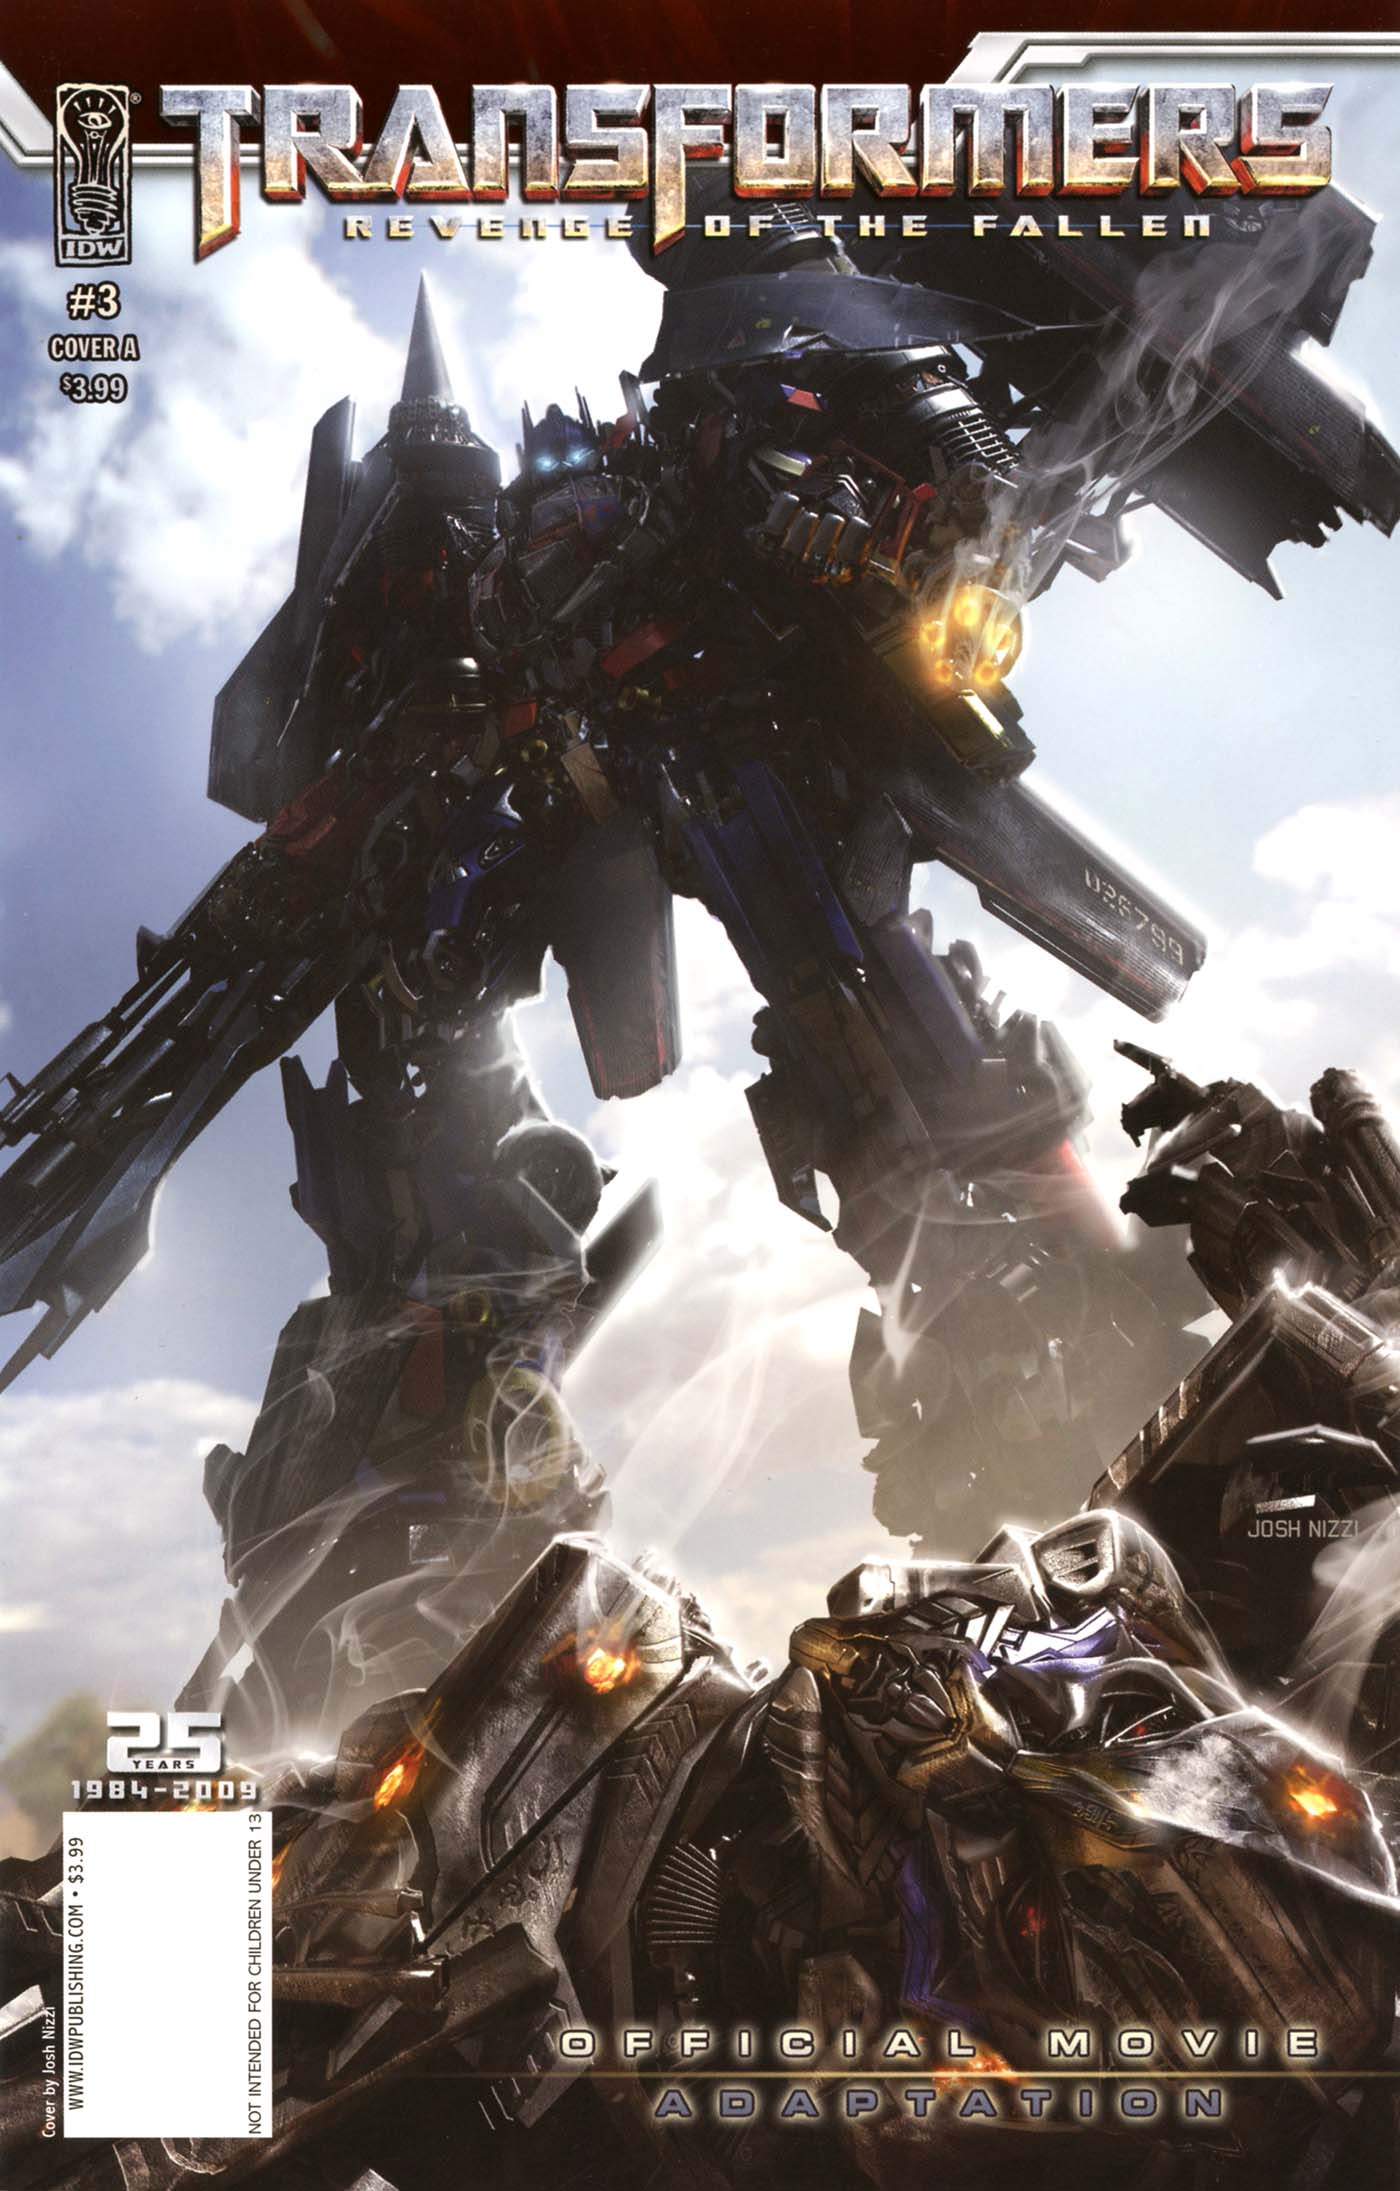 Transformers: Revenge of the Fallen — Official Movie Adaptation 3 Page 1